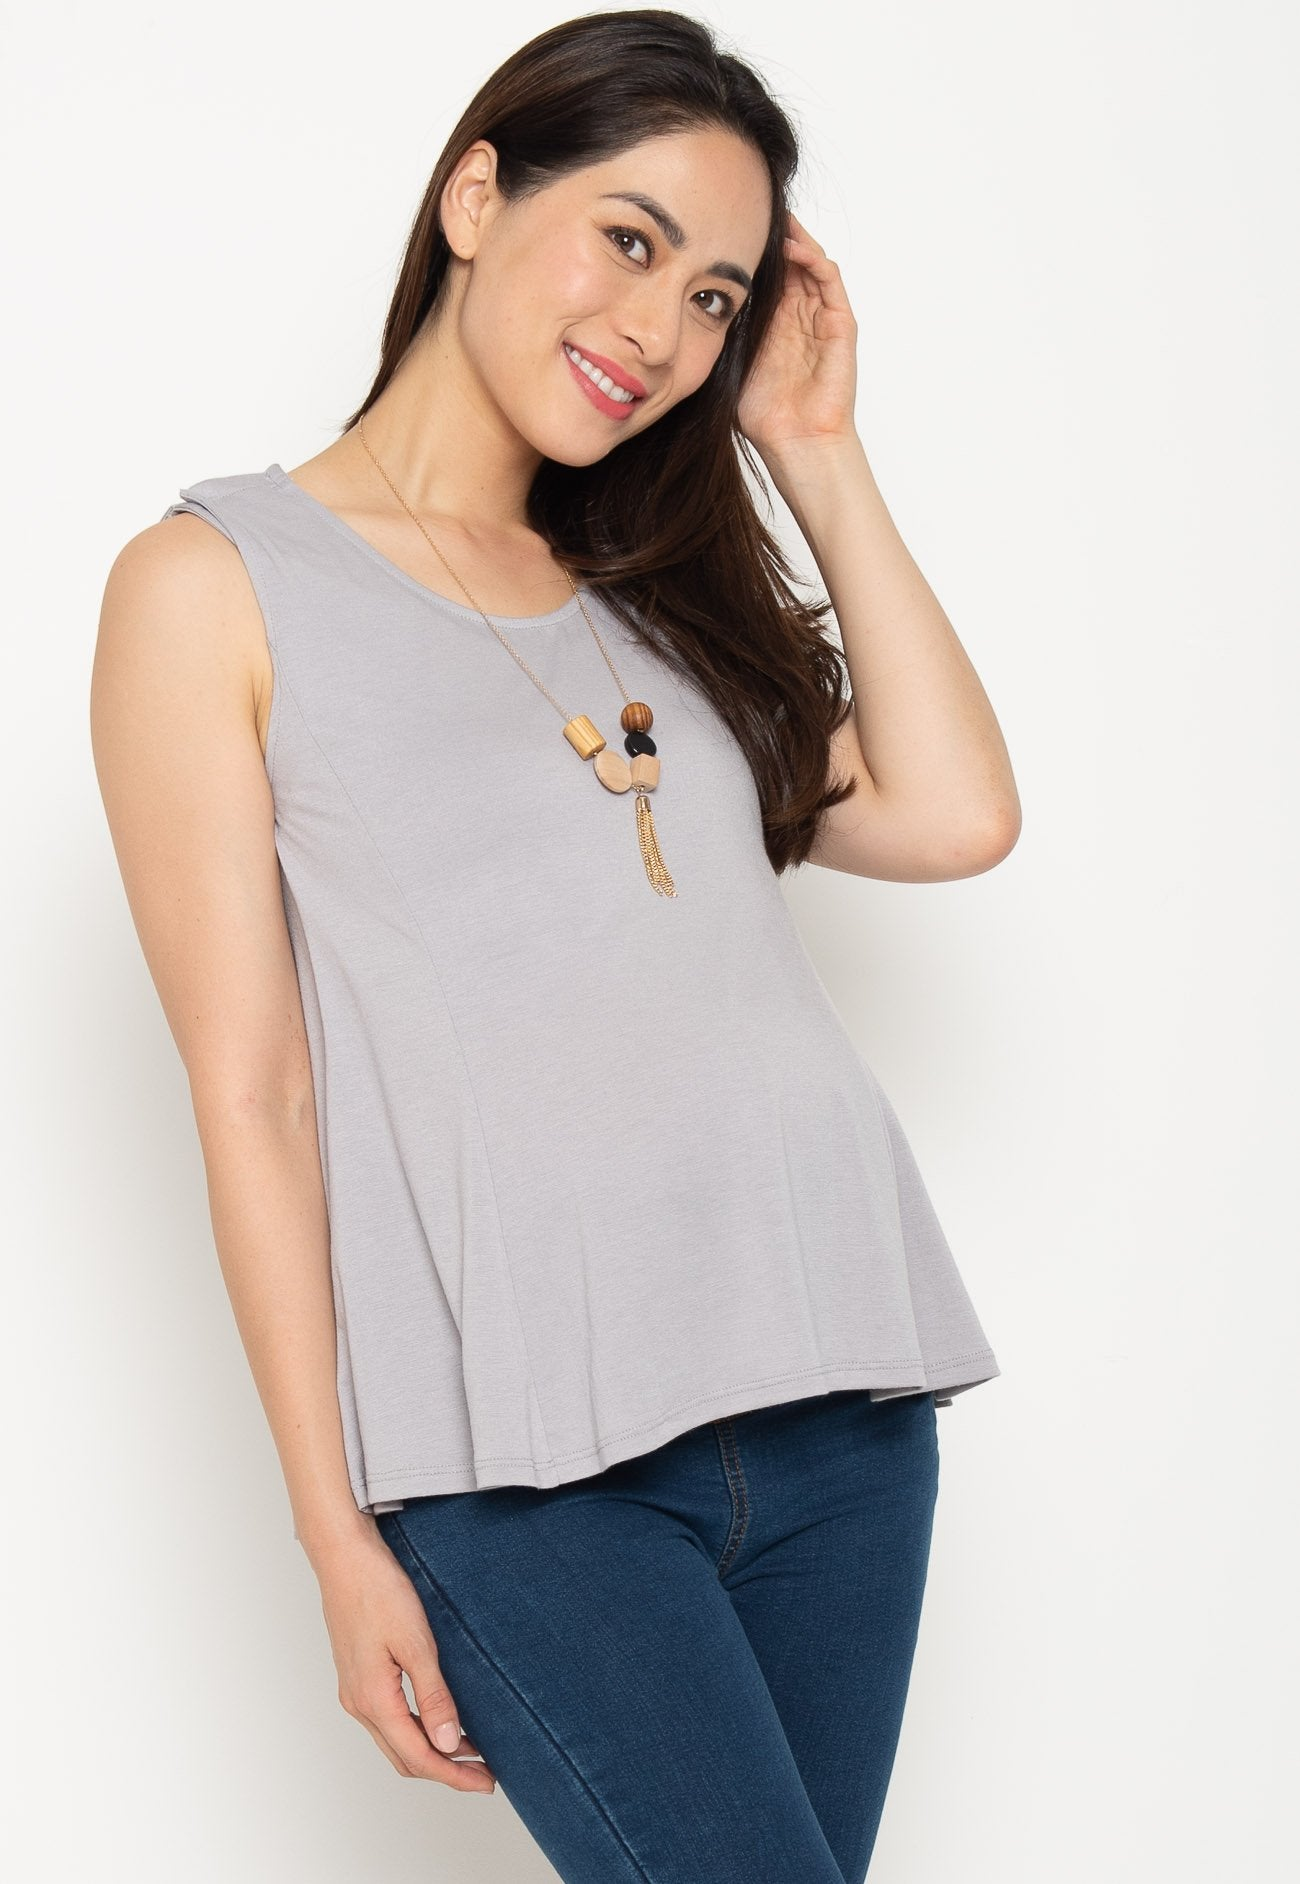 Mothercot Clio Nursing Swing Top in Grey  by JumpEatCry - Maternity and nursing wear